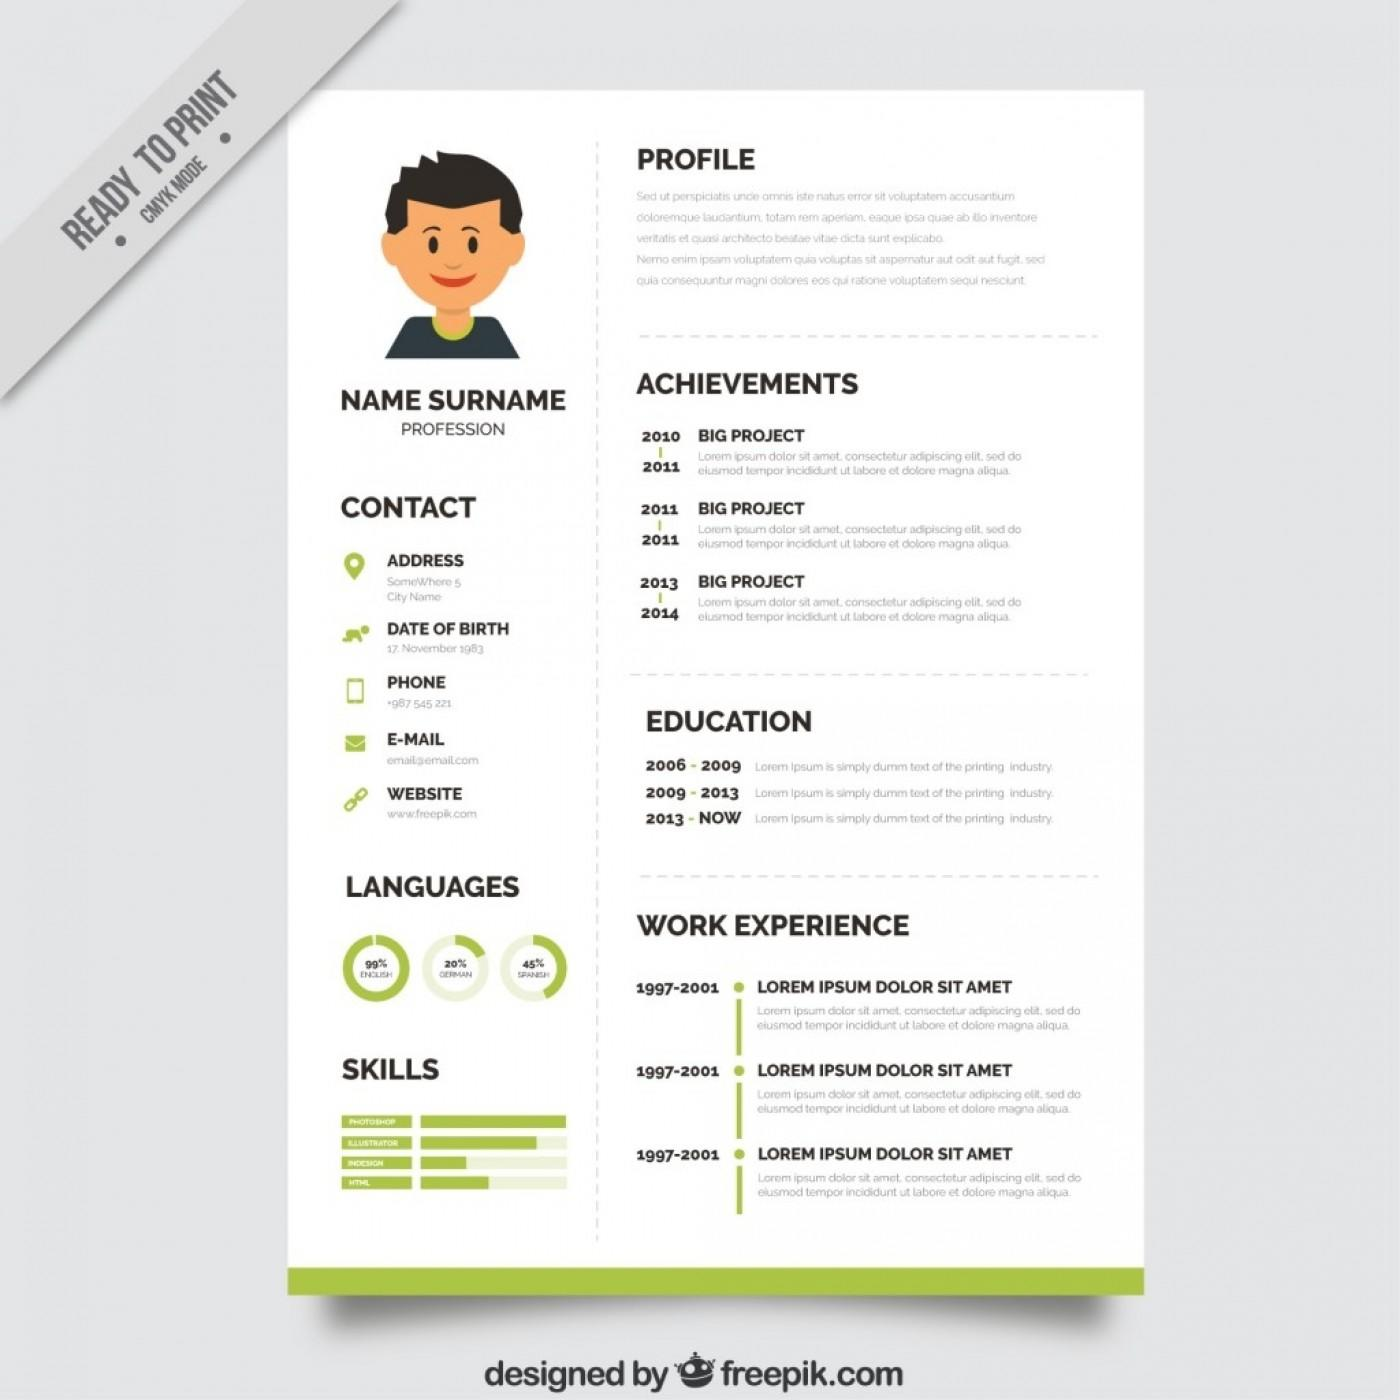 39 Inspirational Cv Template Gratis with Images